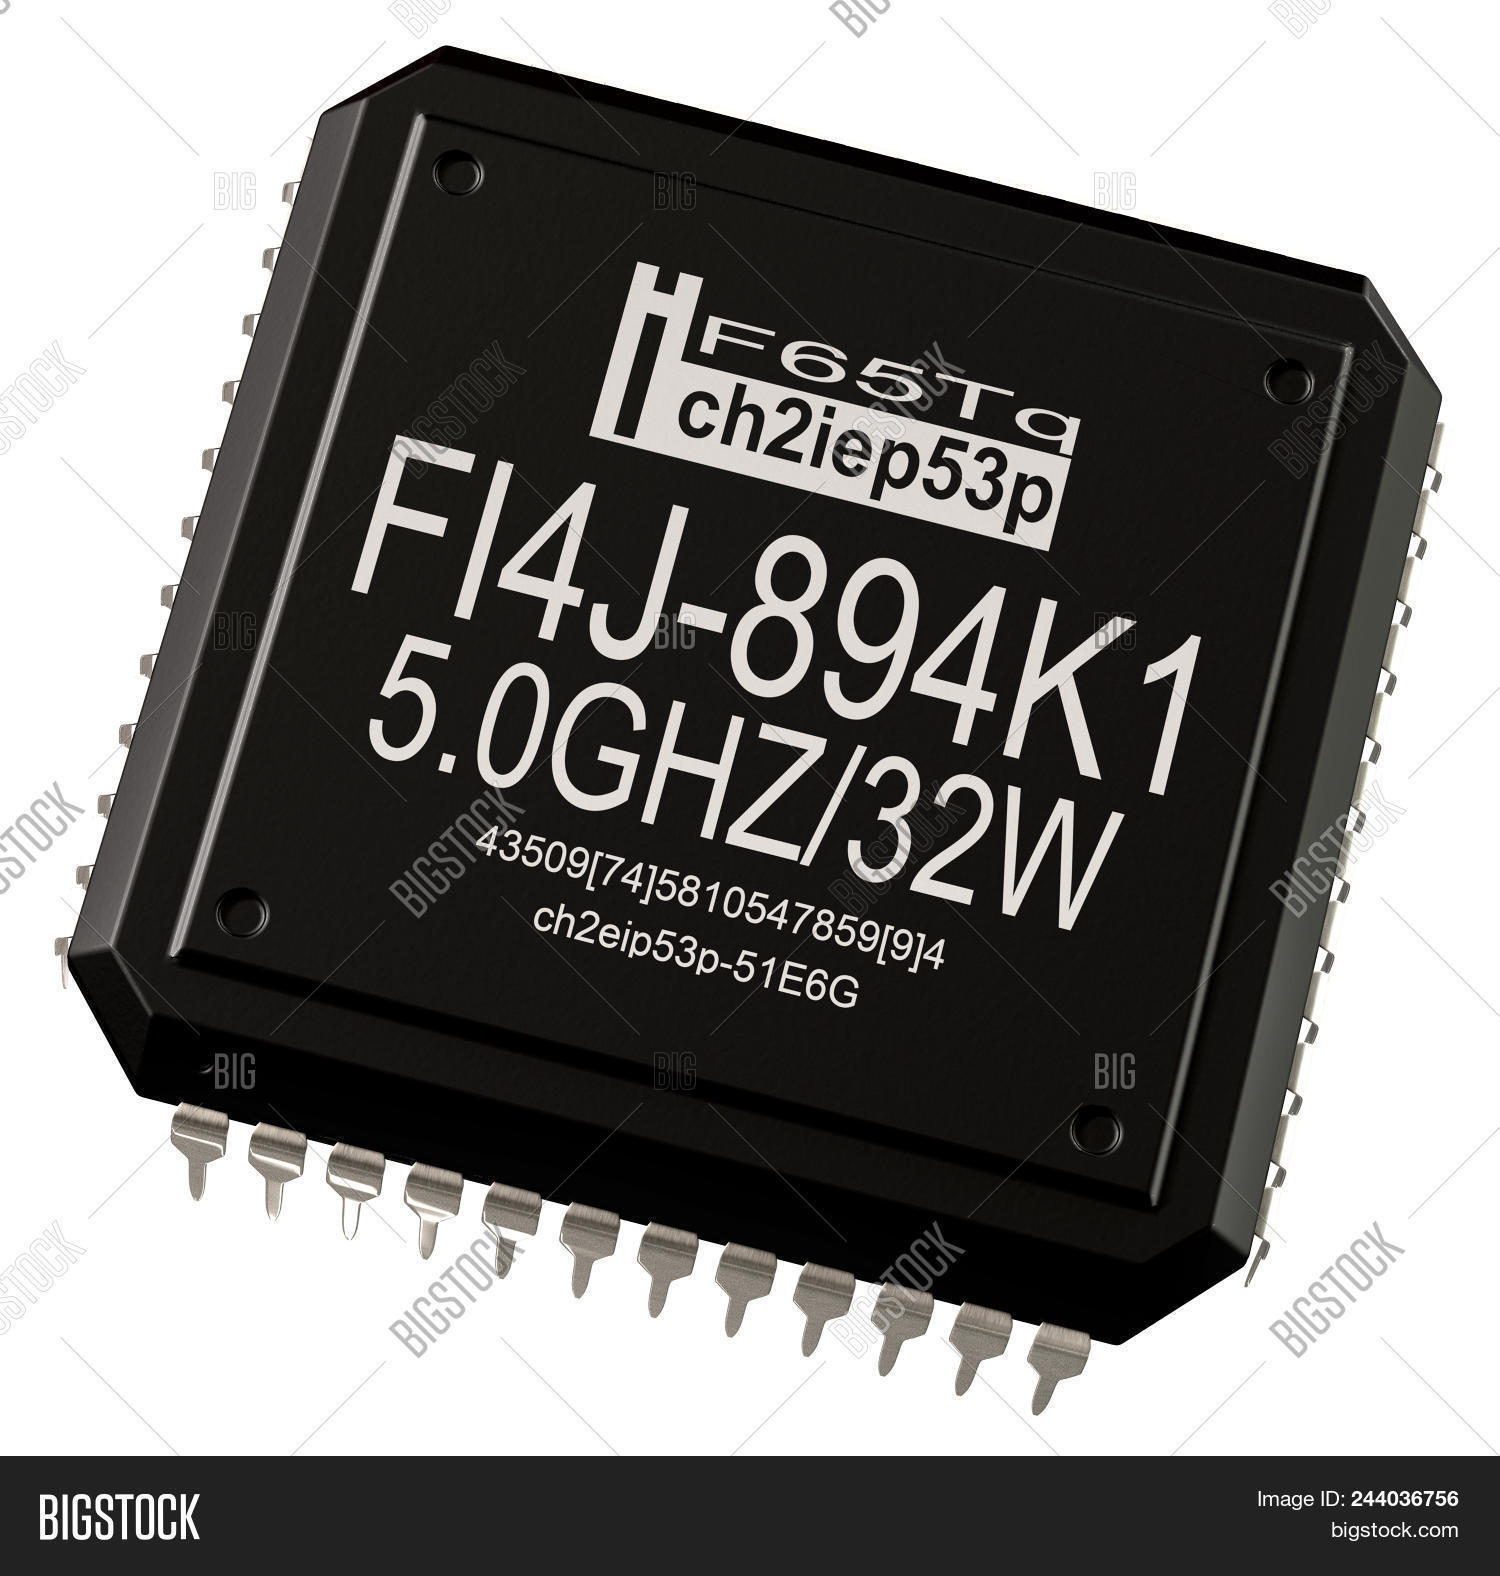 Integrated Circuit Image Photo Free Trial Bigstock Of Computer Parts Micro Chip Artificial Intelligence Learning Machine Future 3d